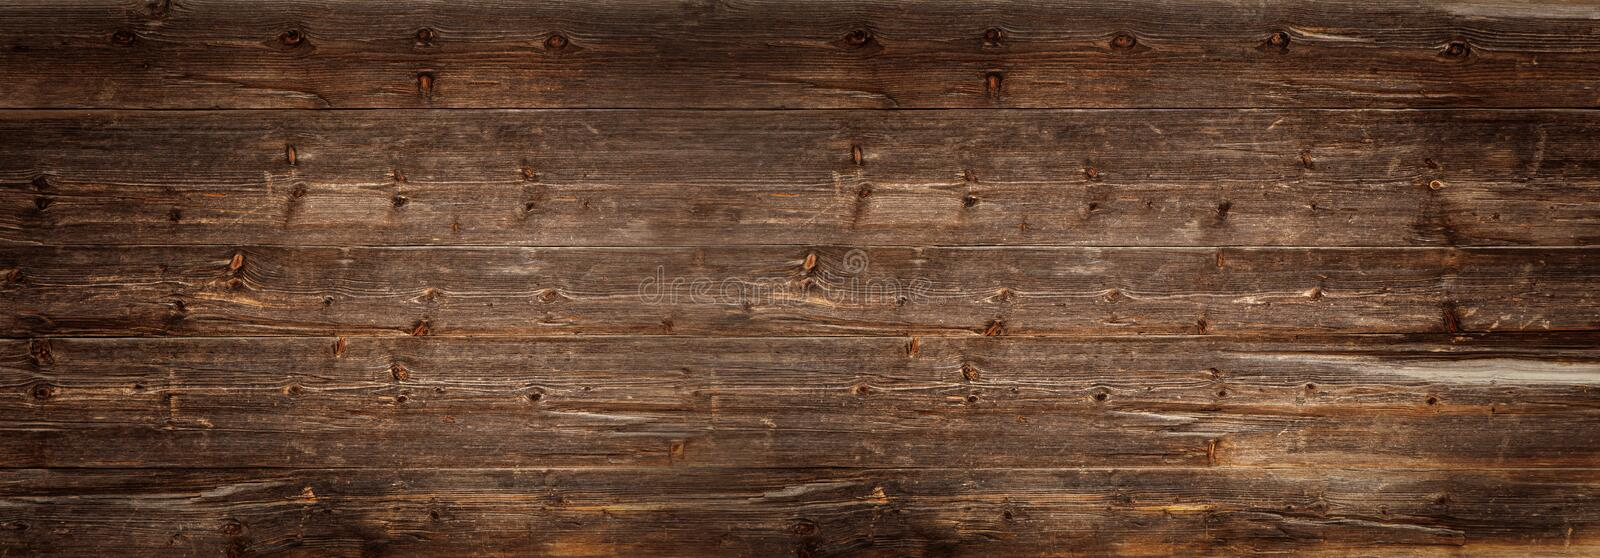 Dark wooden background stock images